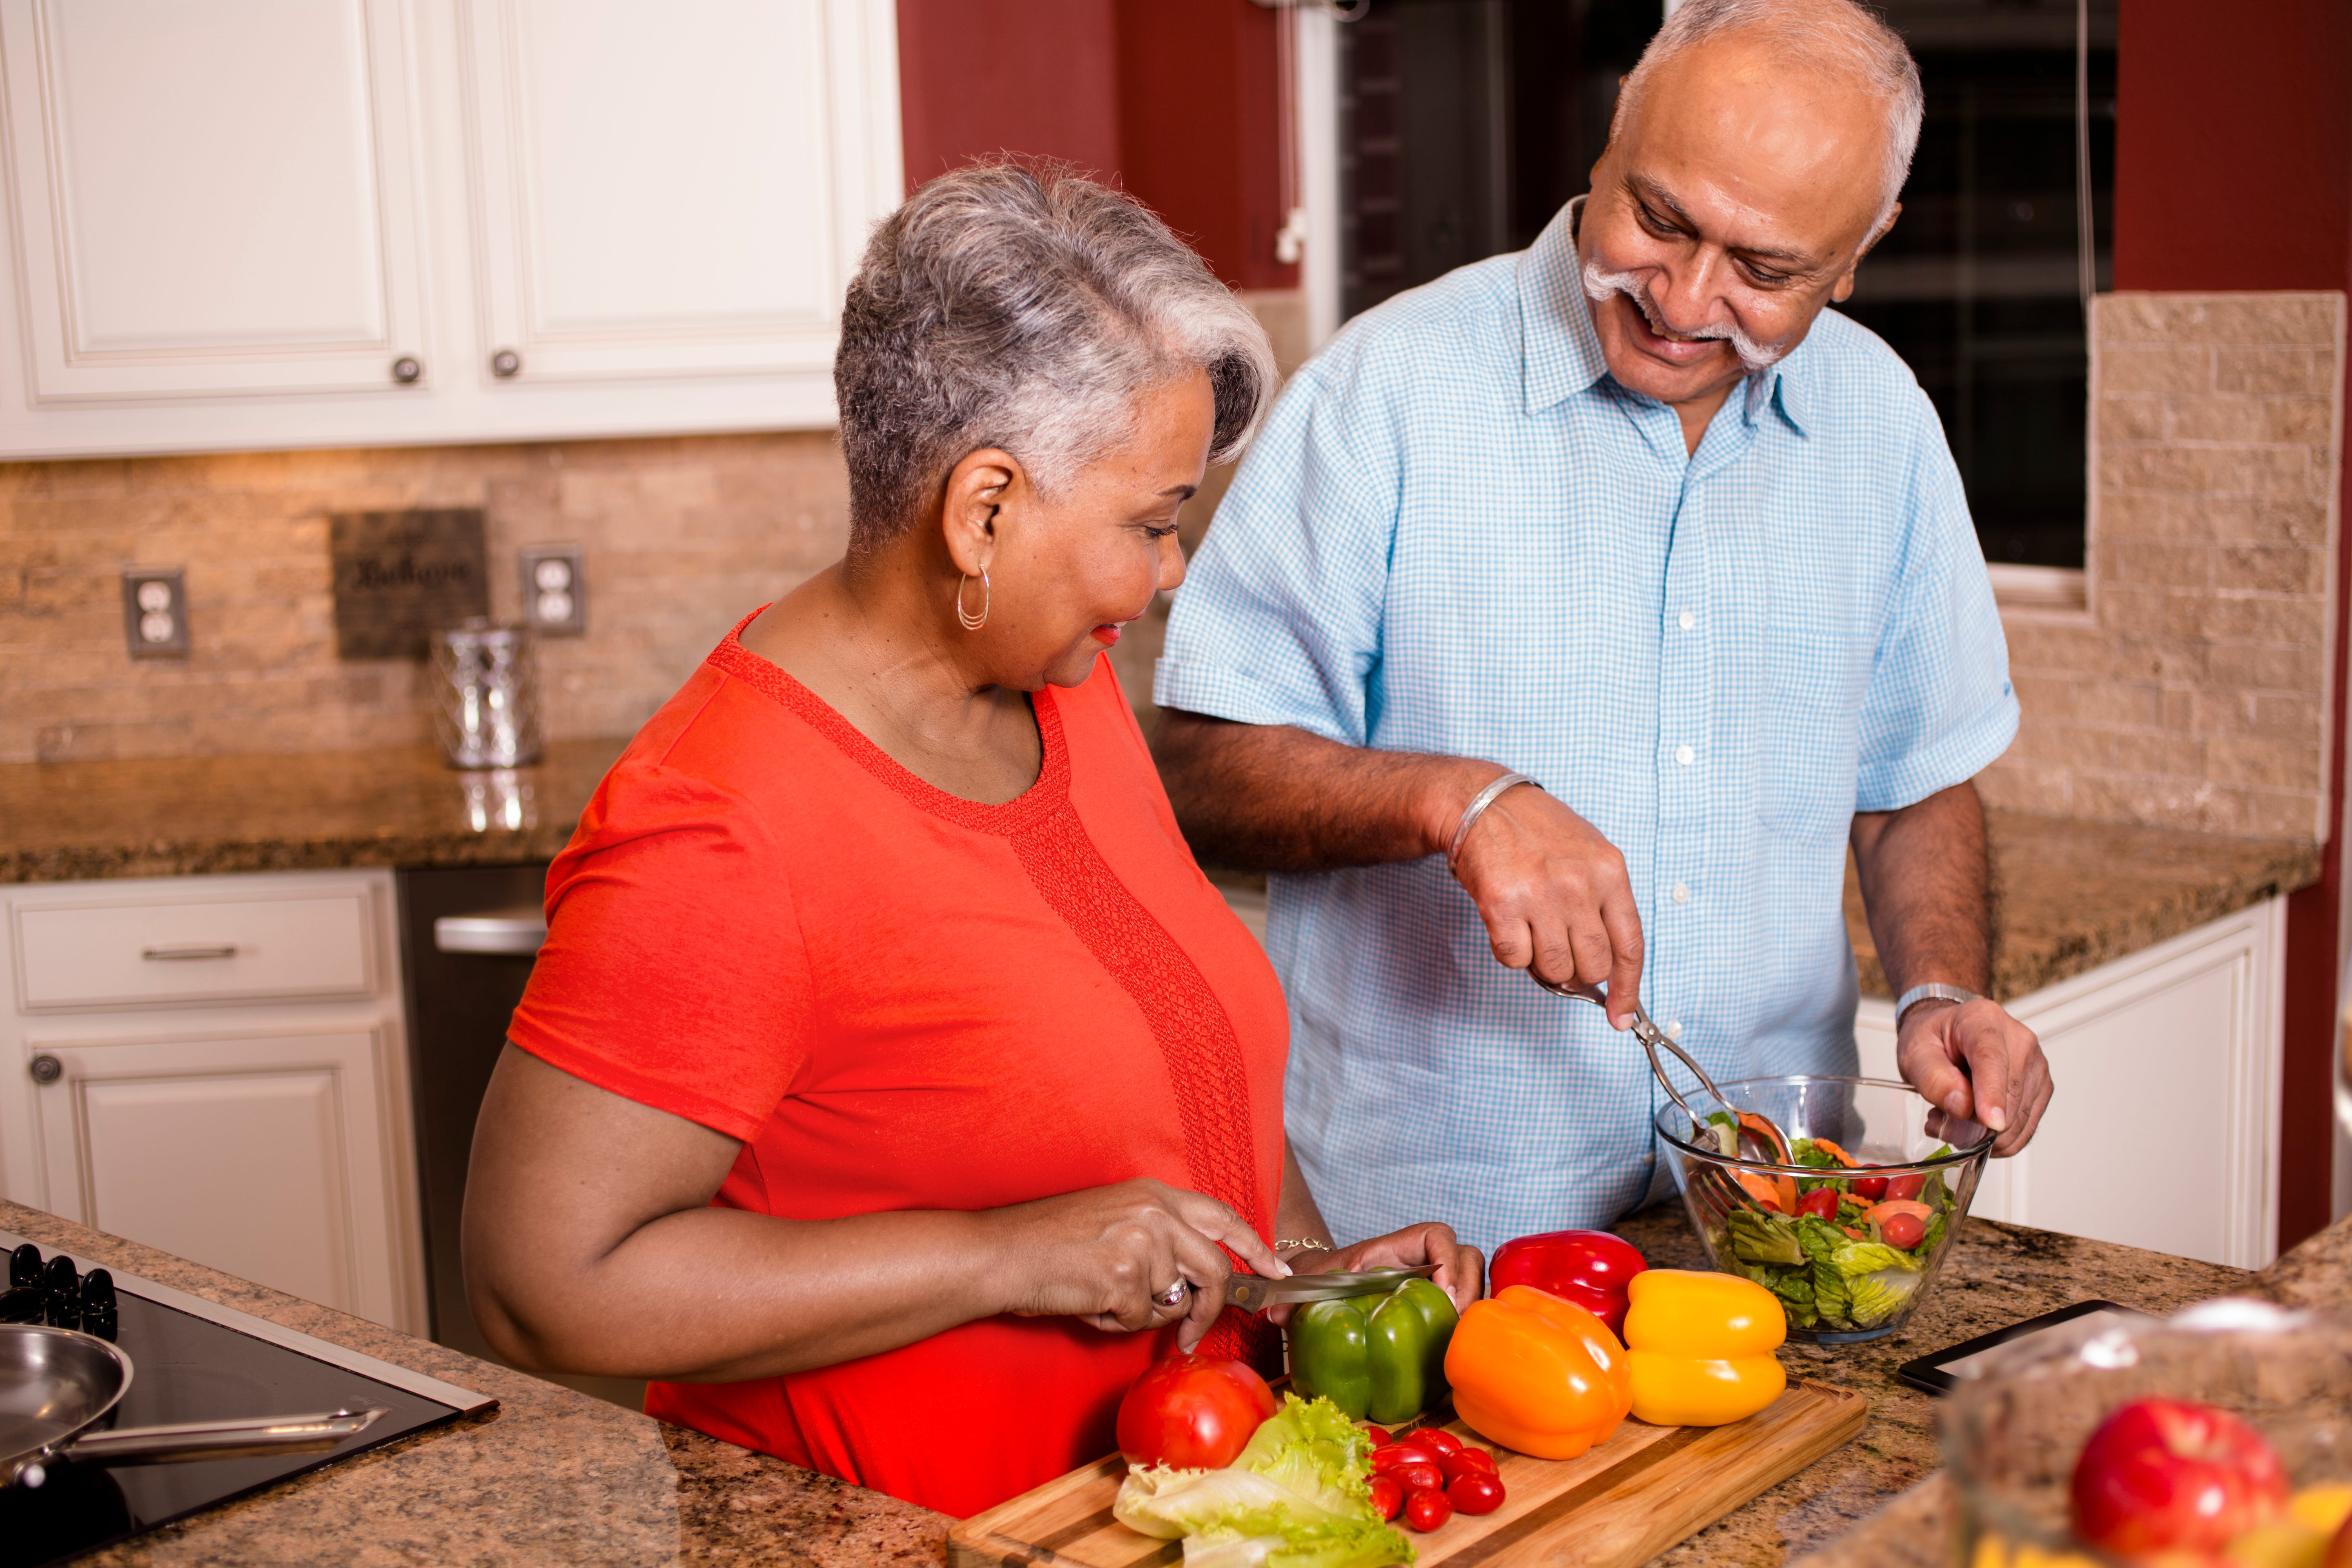 Cooking in a pandemic: Best substitutes for holiday recipe ingredients like milk, eggs or oil